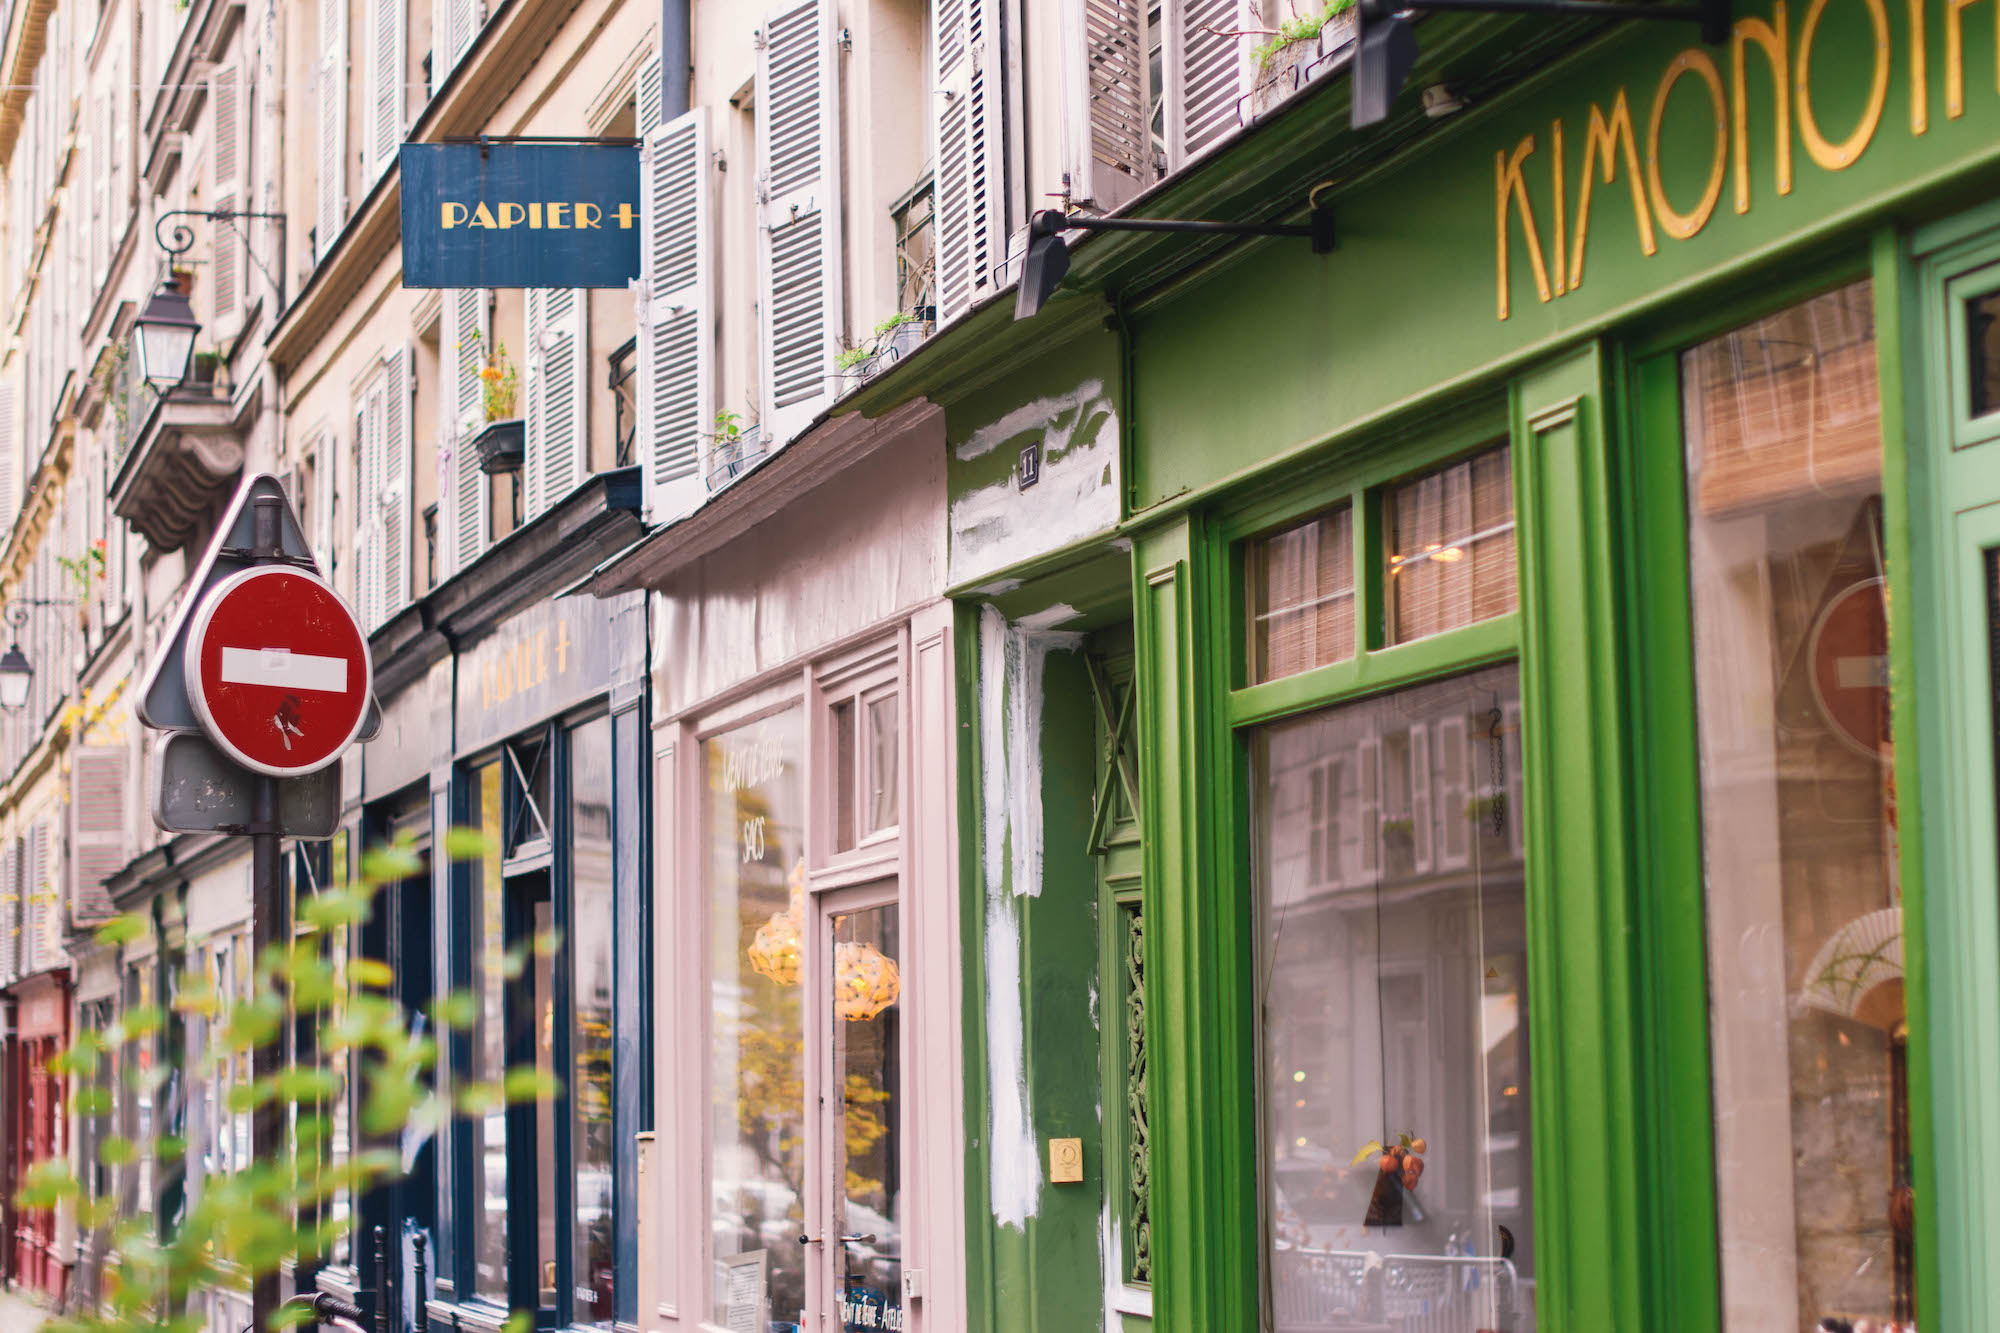 Colorful shops on a calm Paris street wait for buyers to trickle in on a sunny fall day.